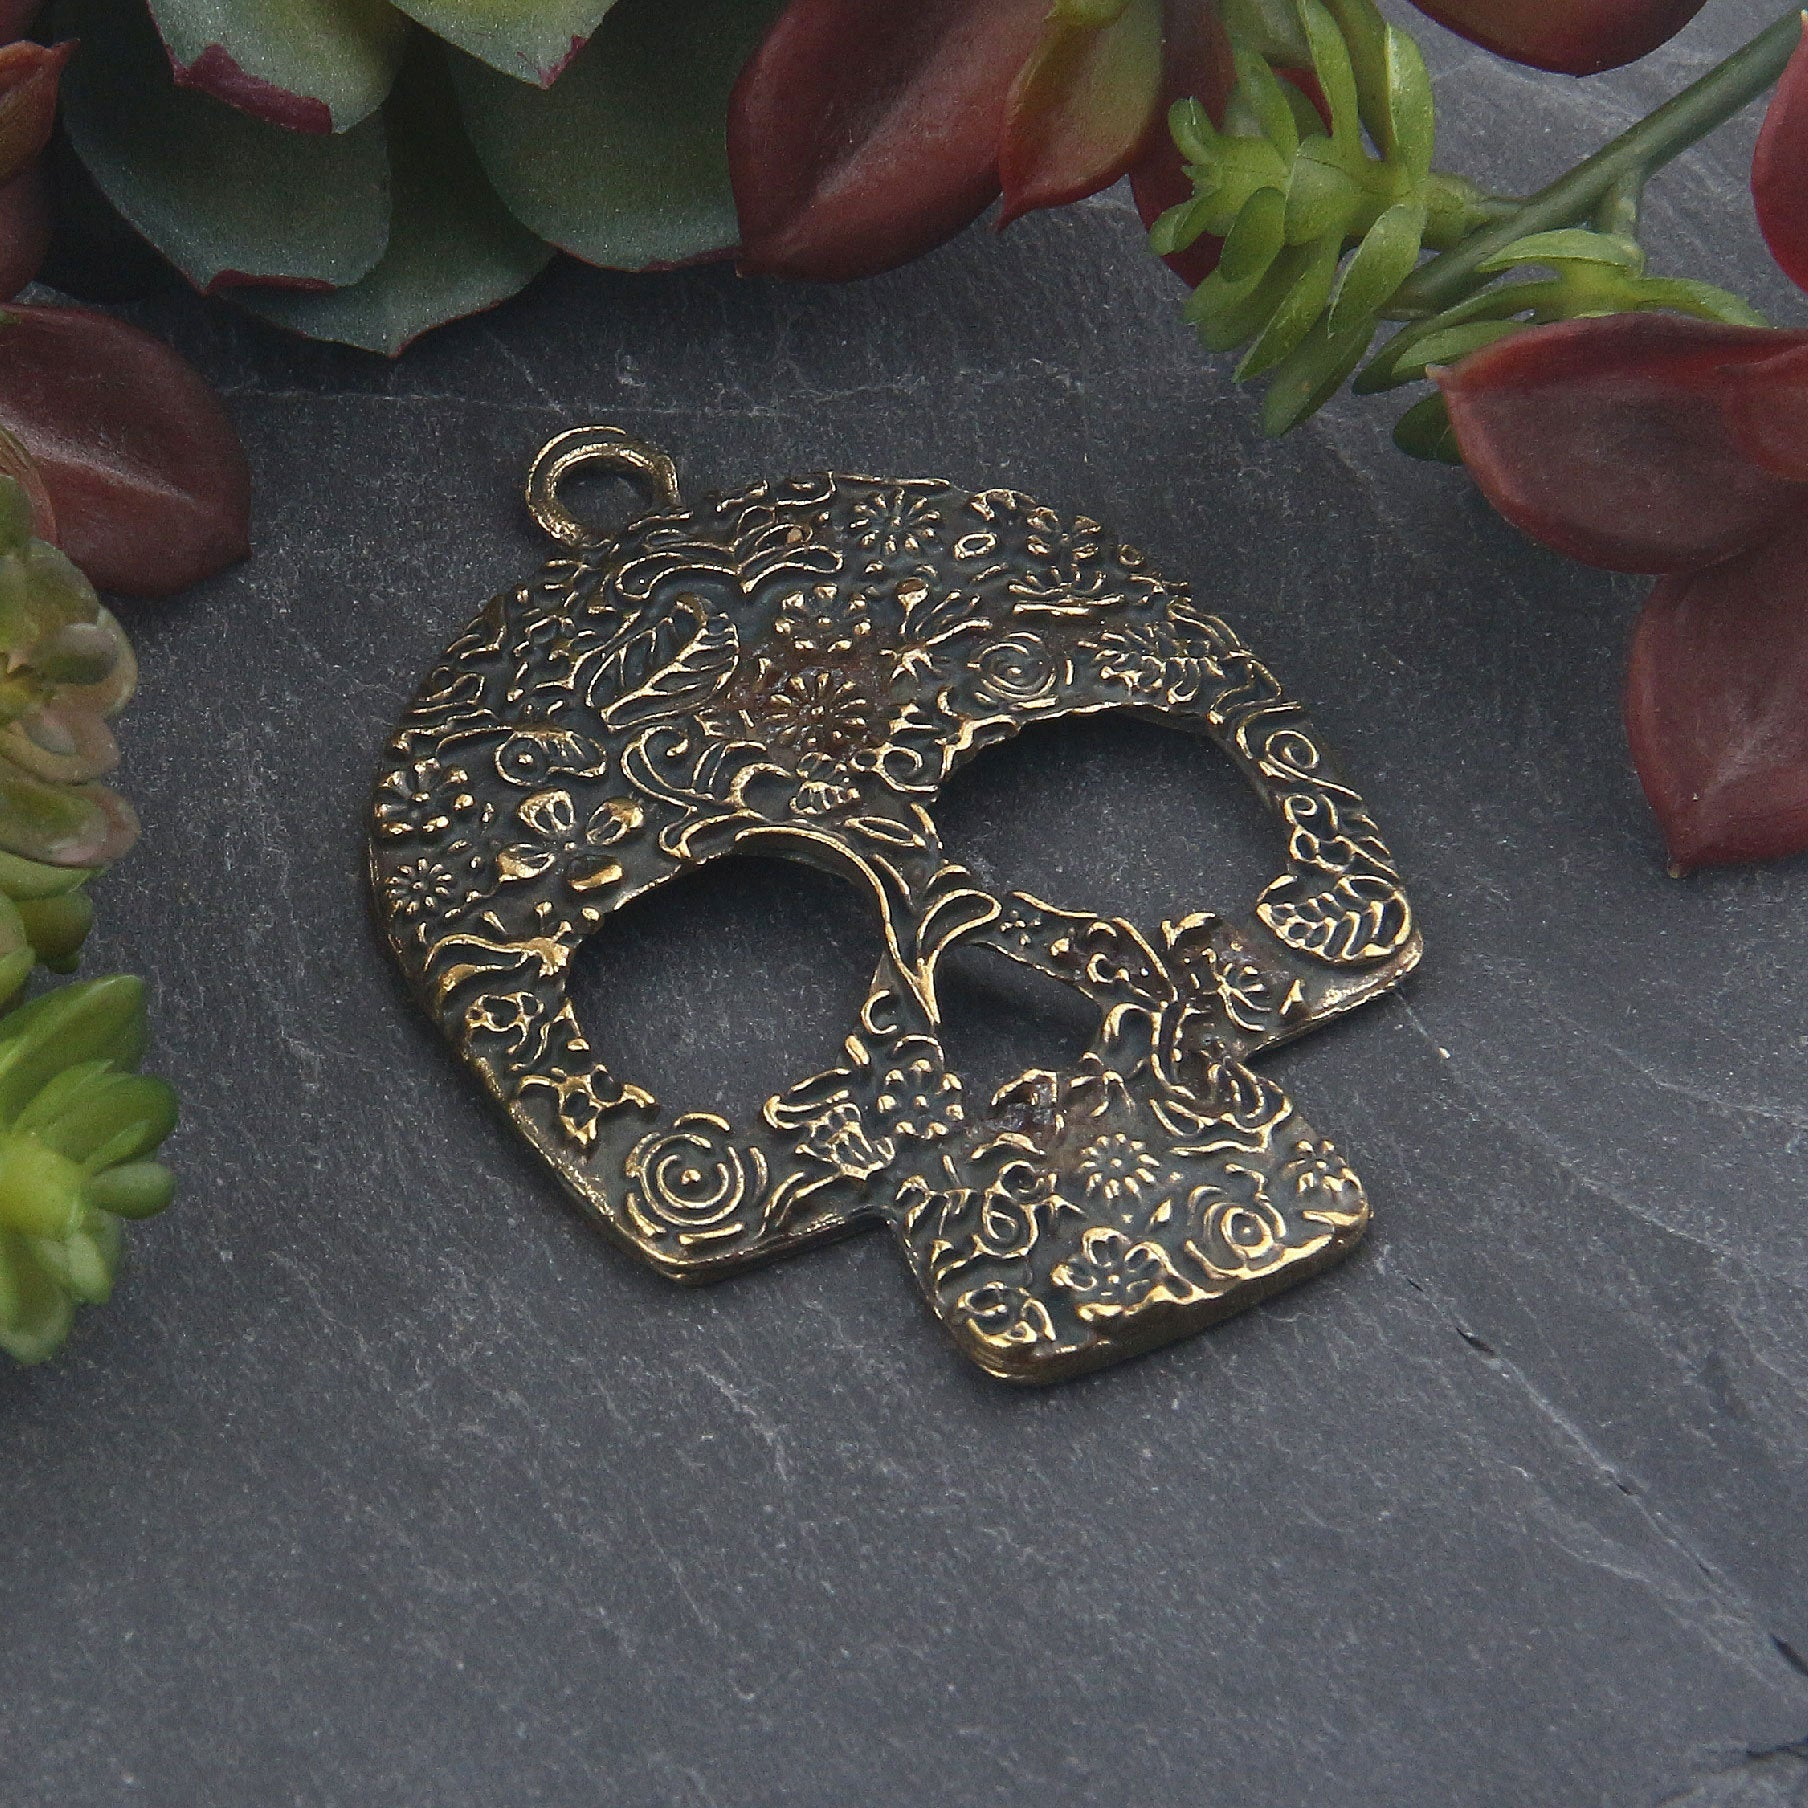 Antique Bronze Floral Patterned Skull Pendant, Day of the Dead, Skull Mask Pendant, 1 piece // ABP-138